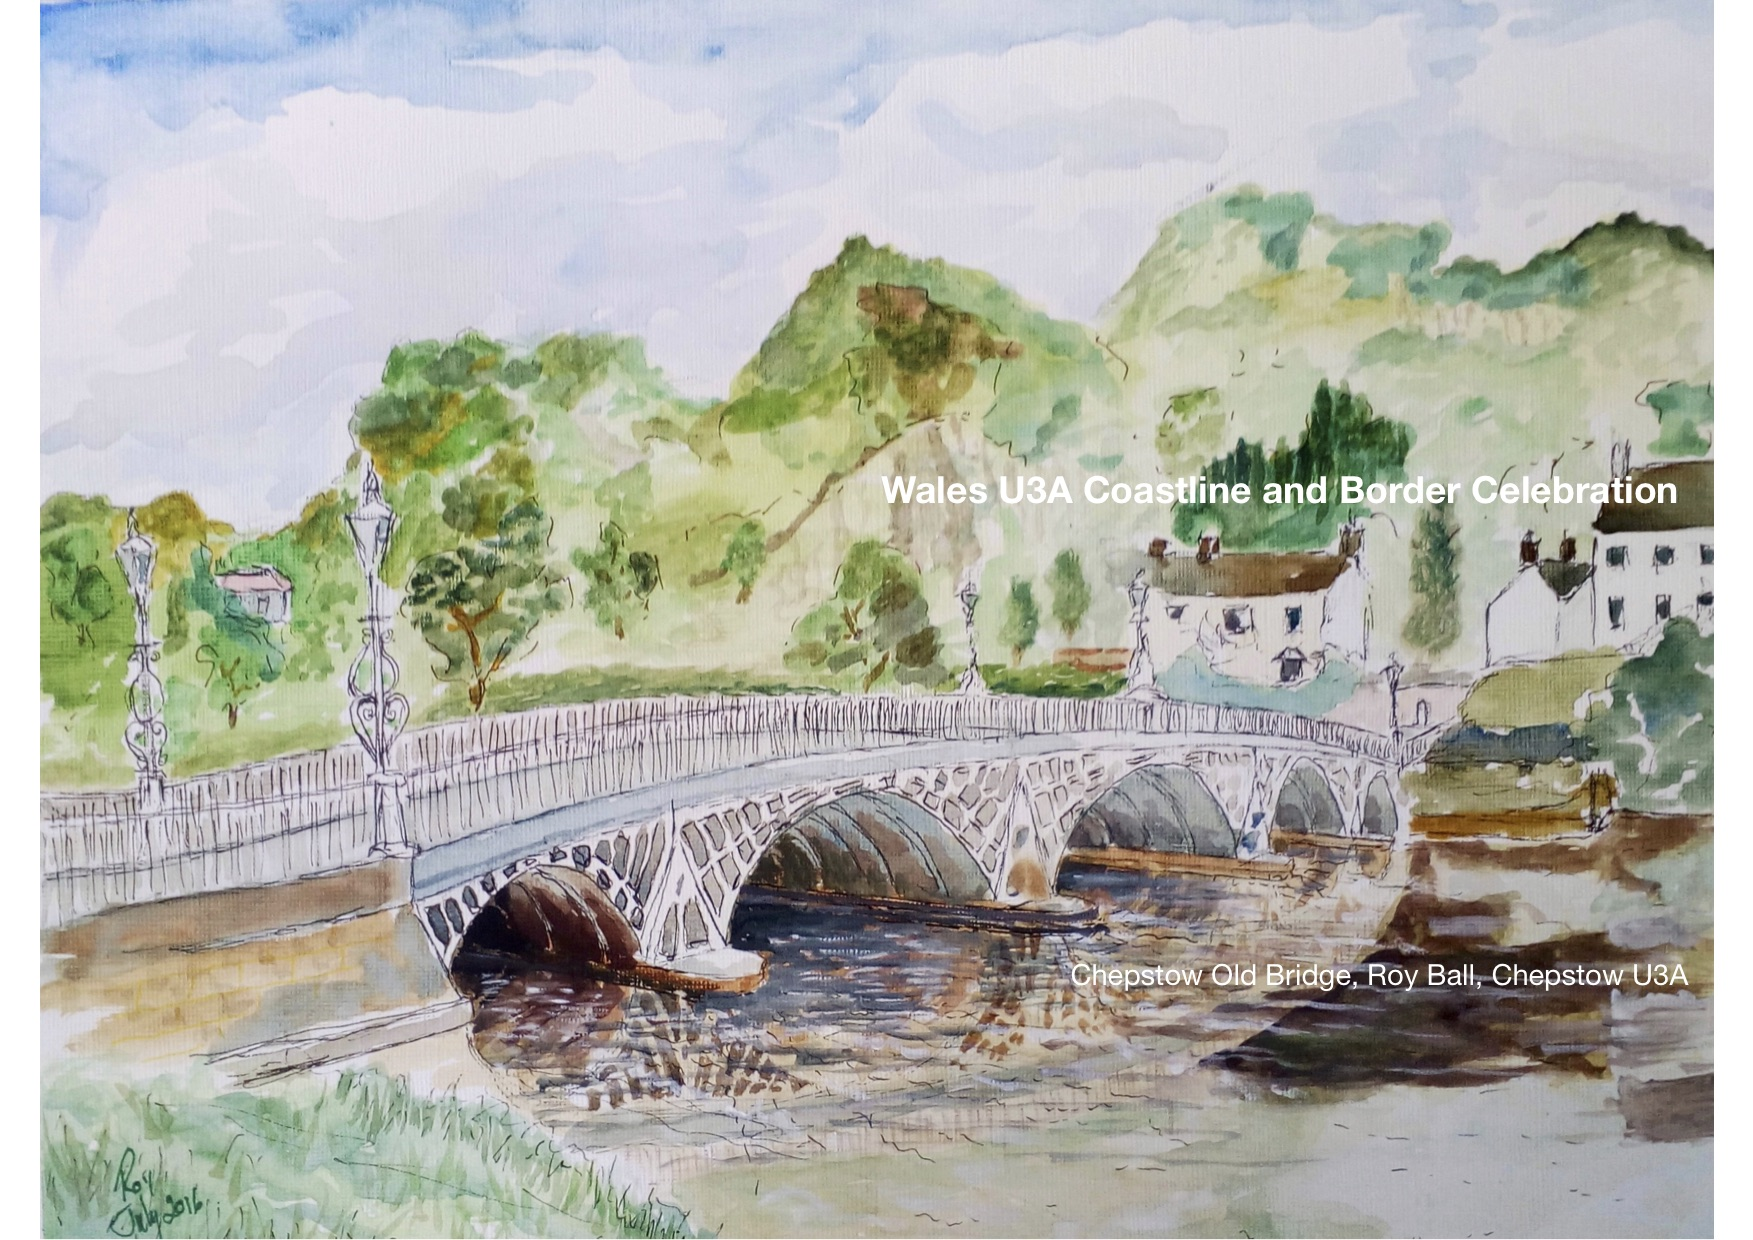 The Old Chepstow Bridge